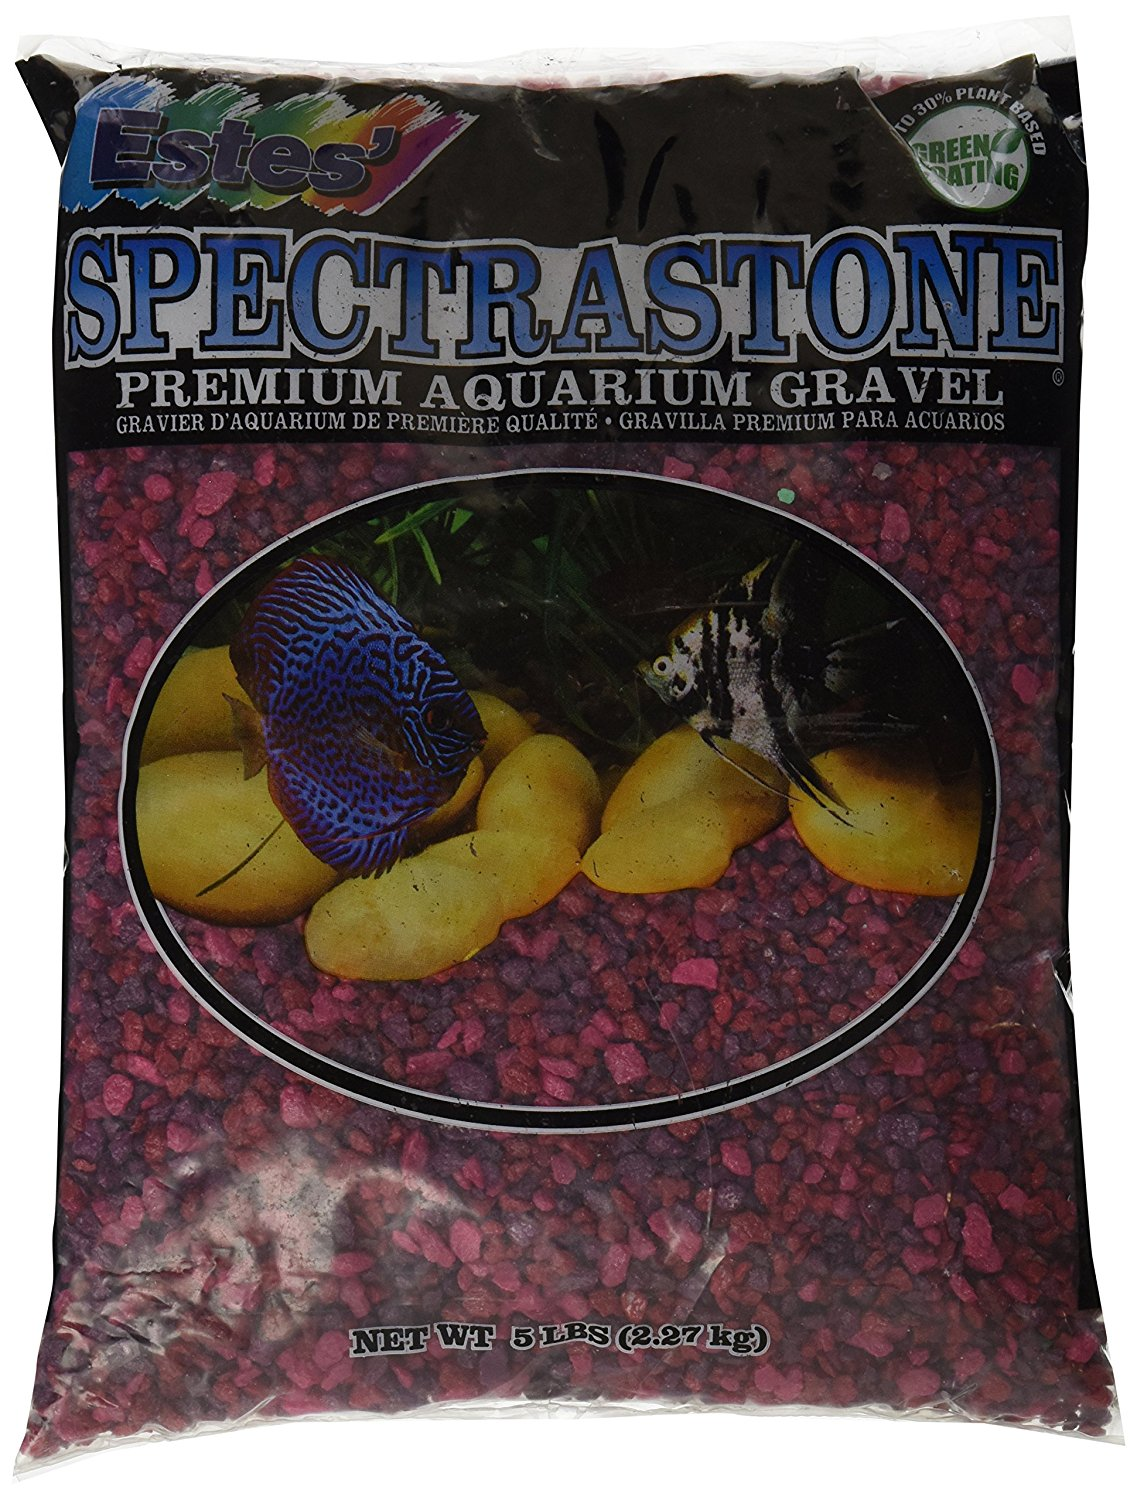 Berry Lake Aquarium Gravel for Freshwater Aquariums, 5-Pound Bag, Will not affect PH By Spectrastone by